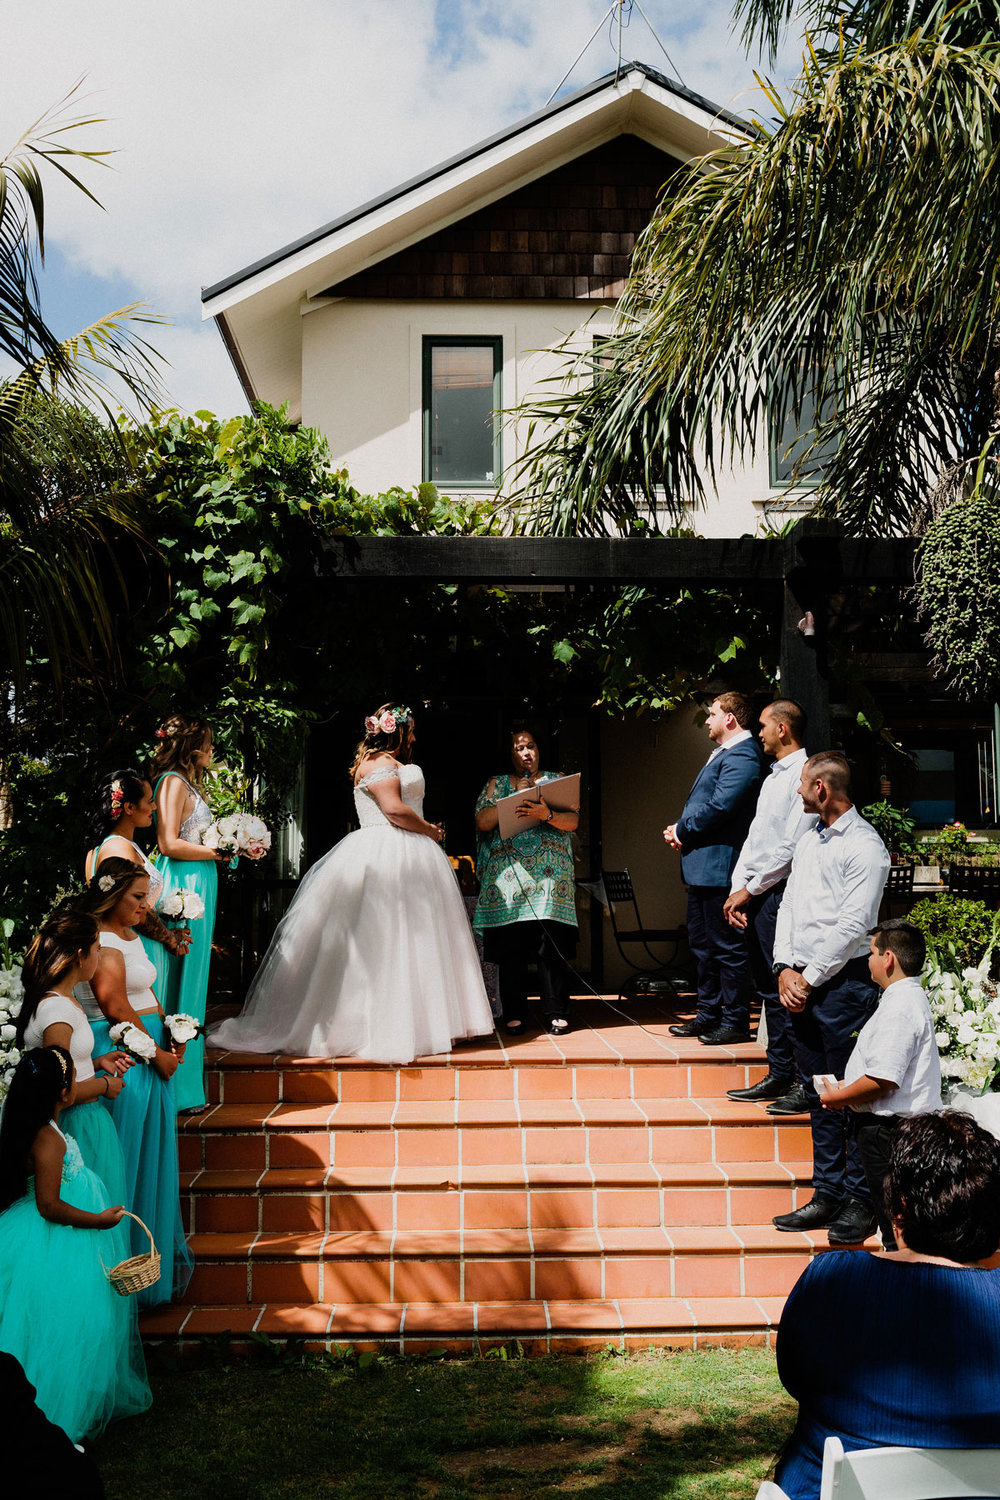 Ceremony - Relaxed Backyard Wedding |  Astra Bride Stevie | Cristina Rossi AK1101 | Pt Chevalier, Auckland | Joanna Wickham Photography